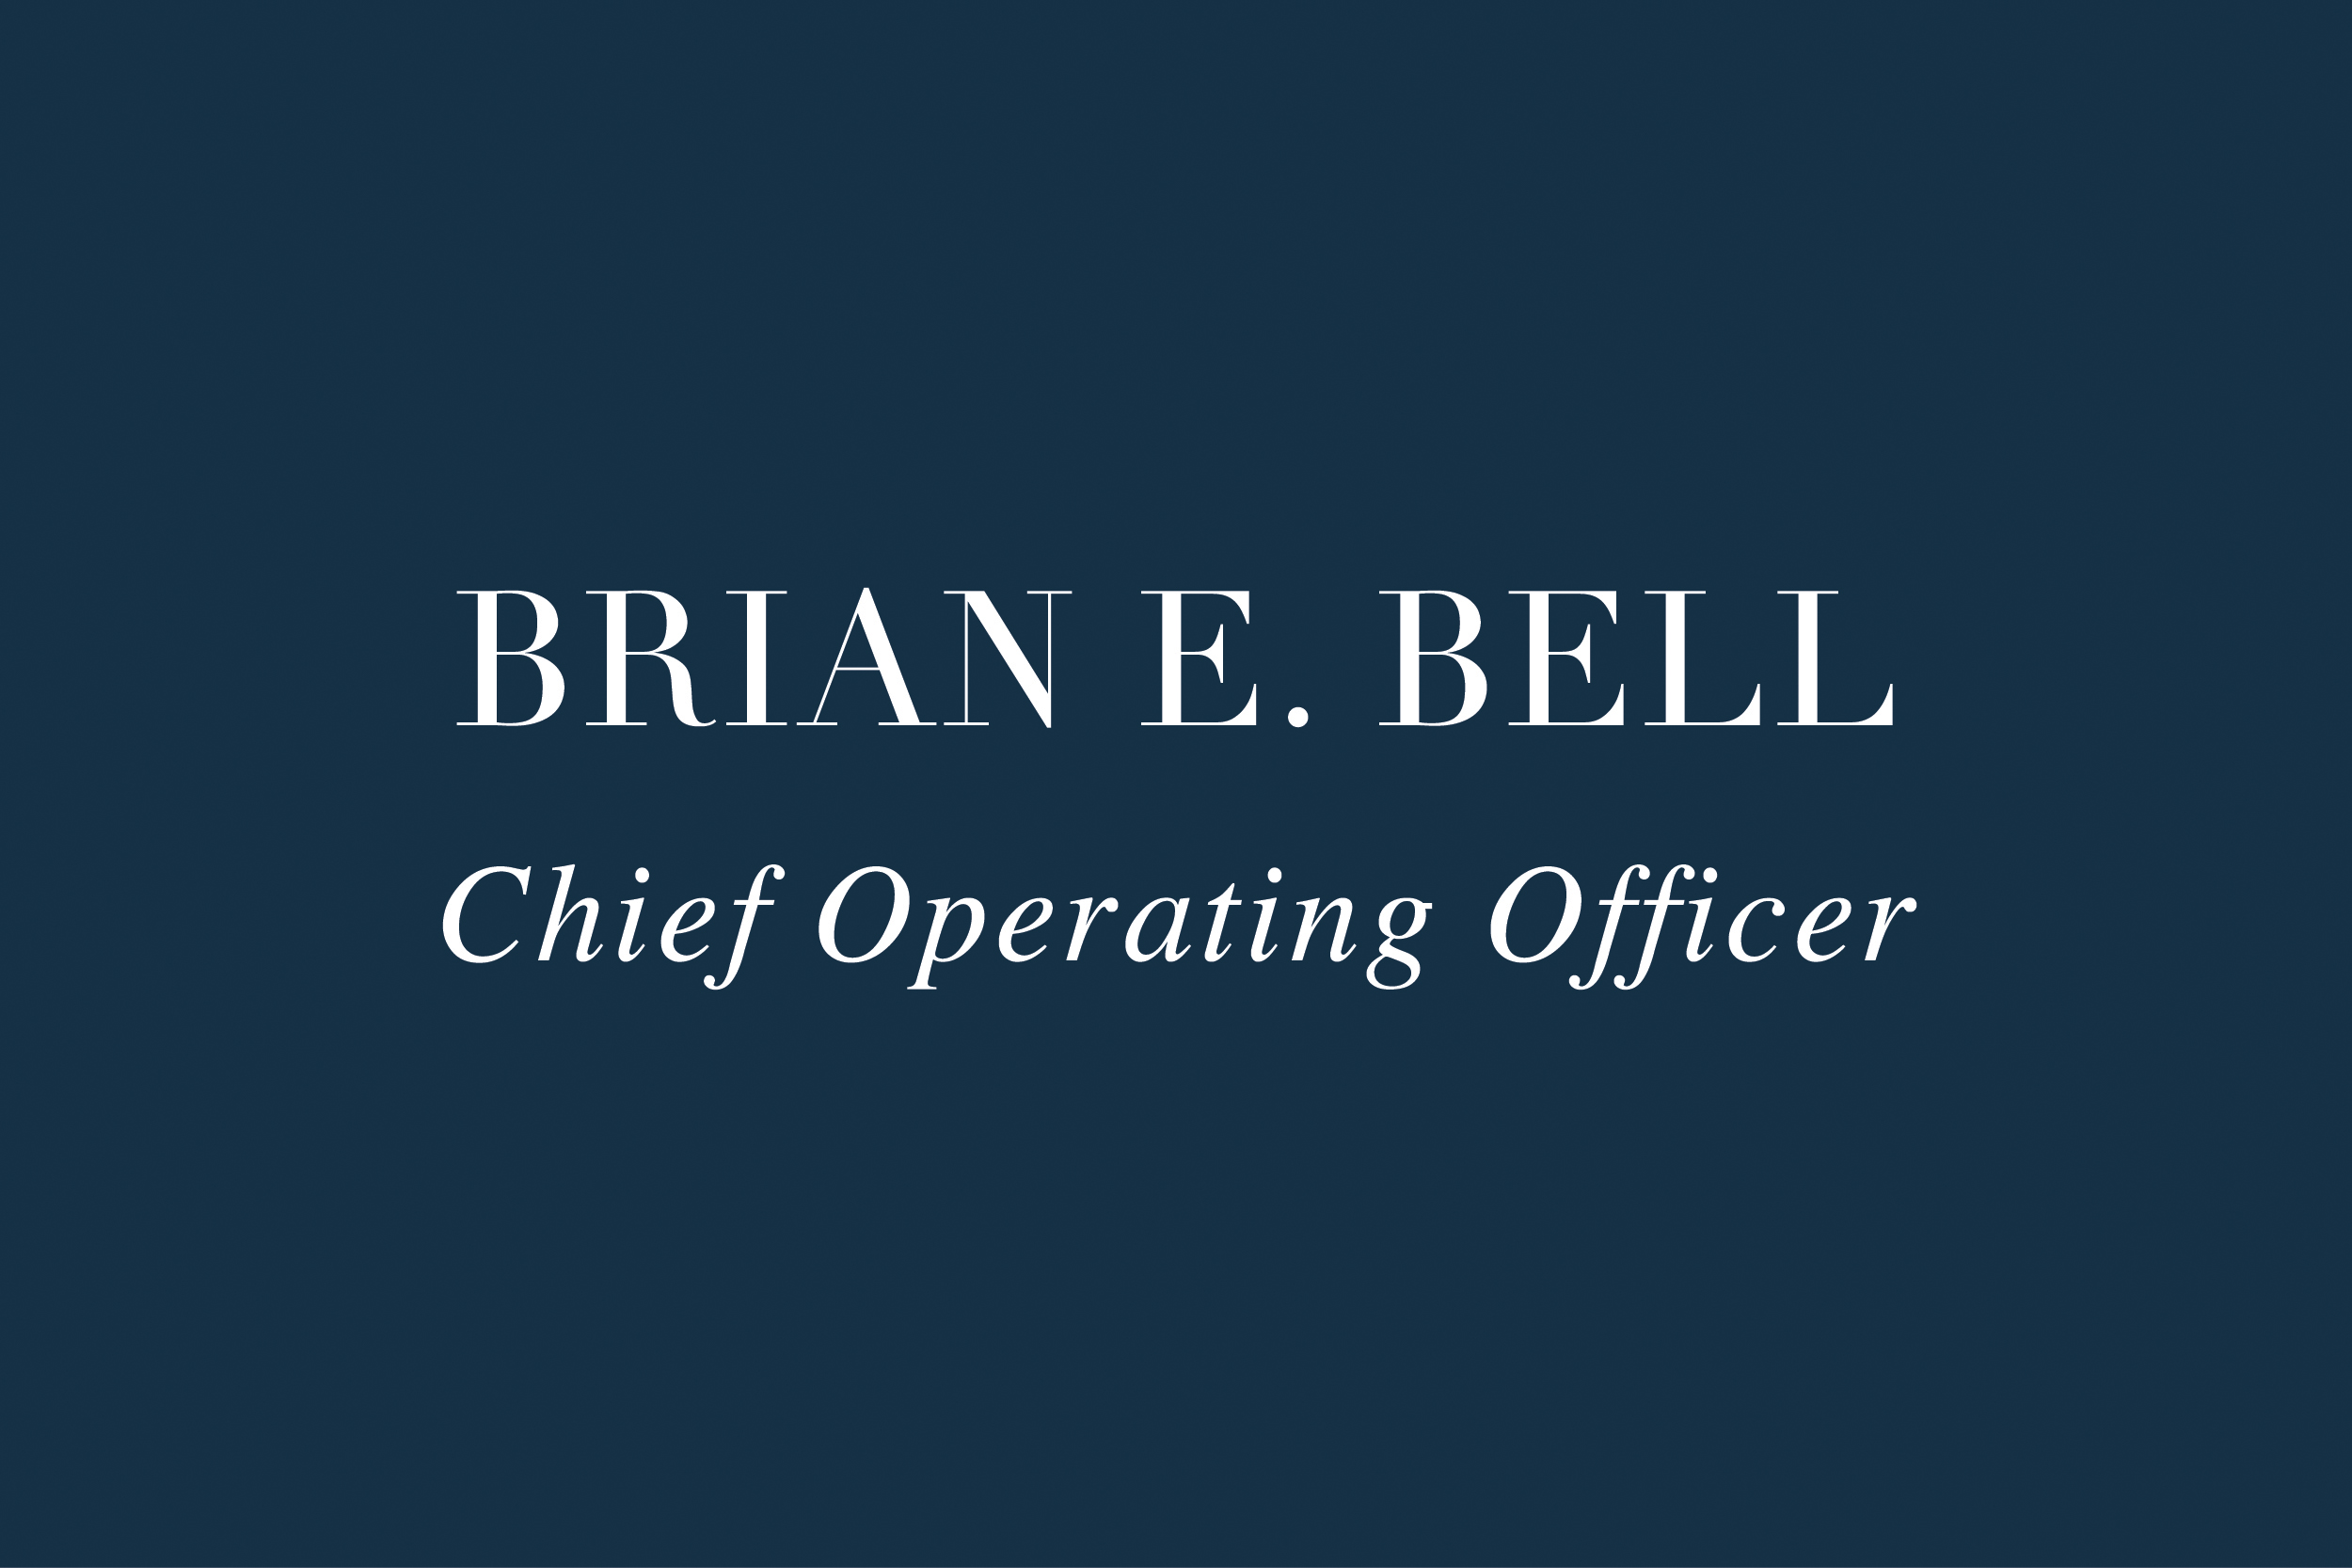 BRIAN E. BELL | Chief Operating Officer